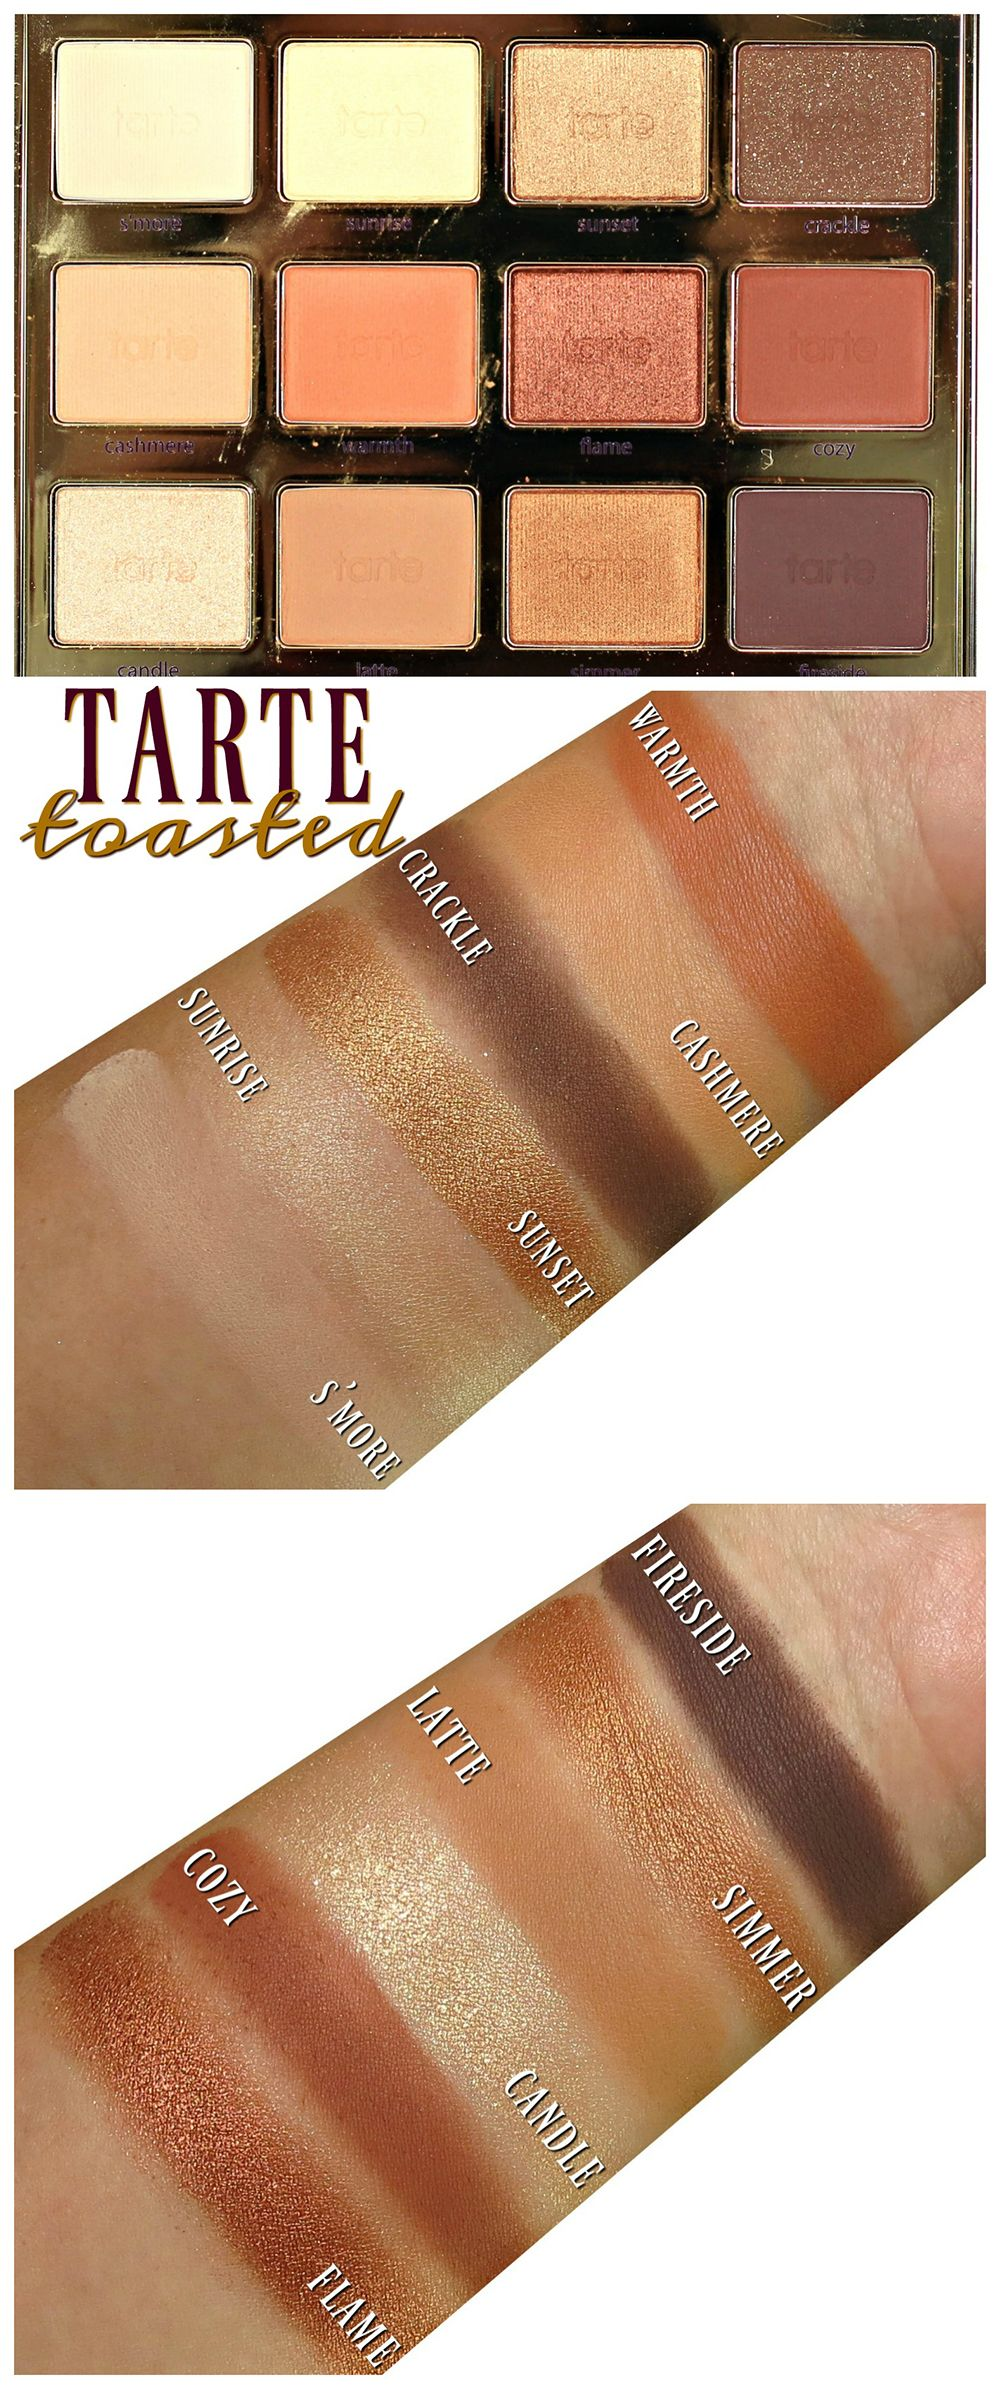 Tarte Tartelette Toasted Eyeshadow Palette Swatches, Review + EOTD ...